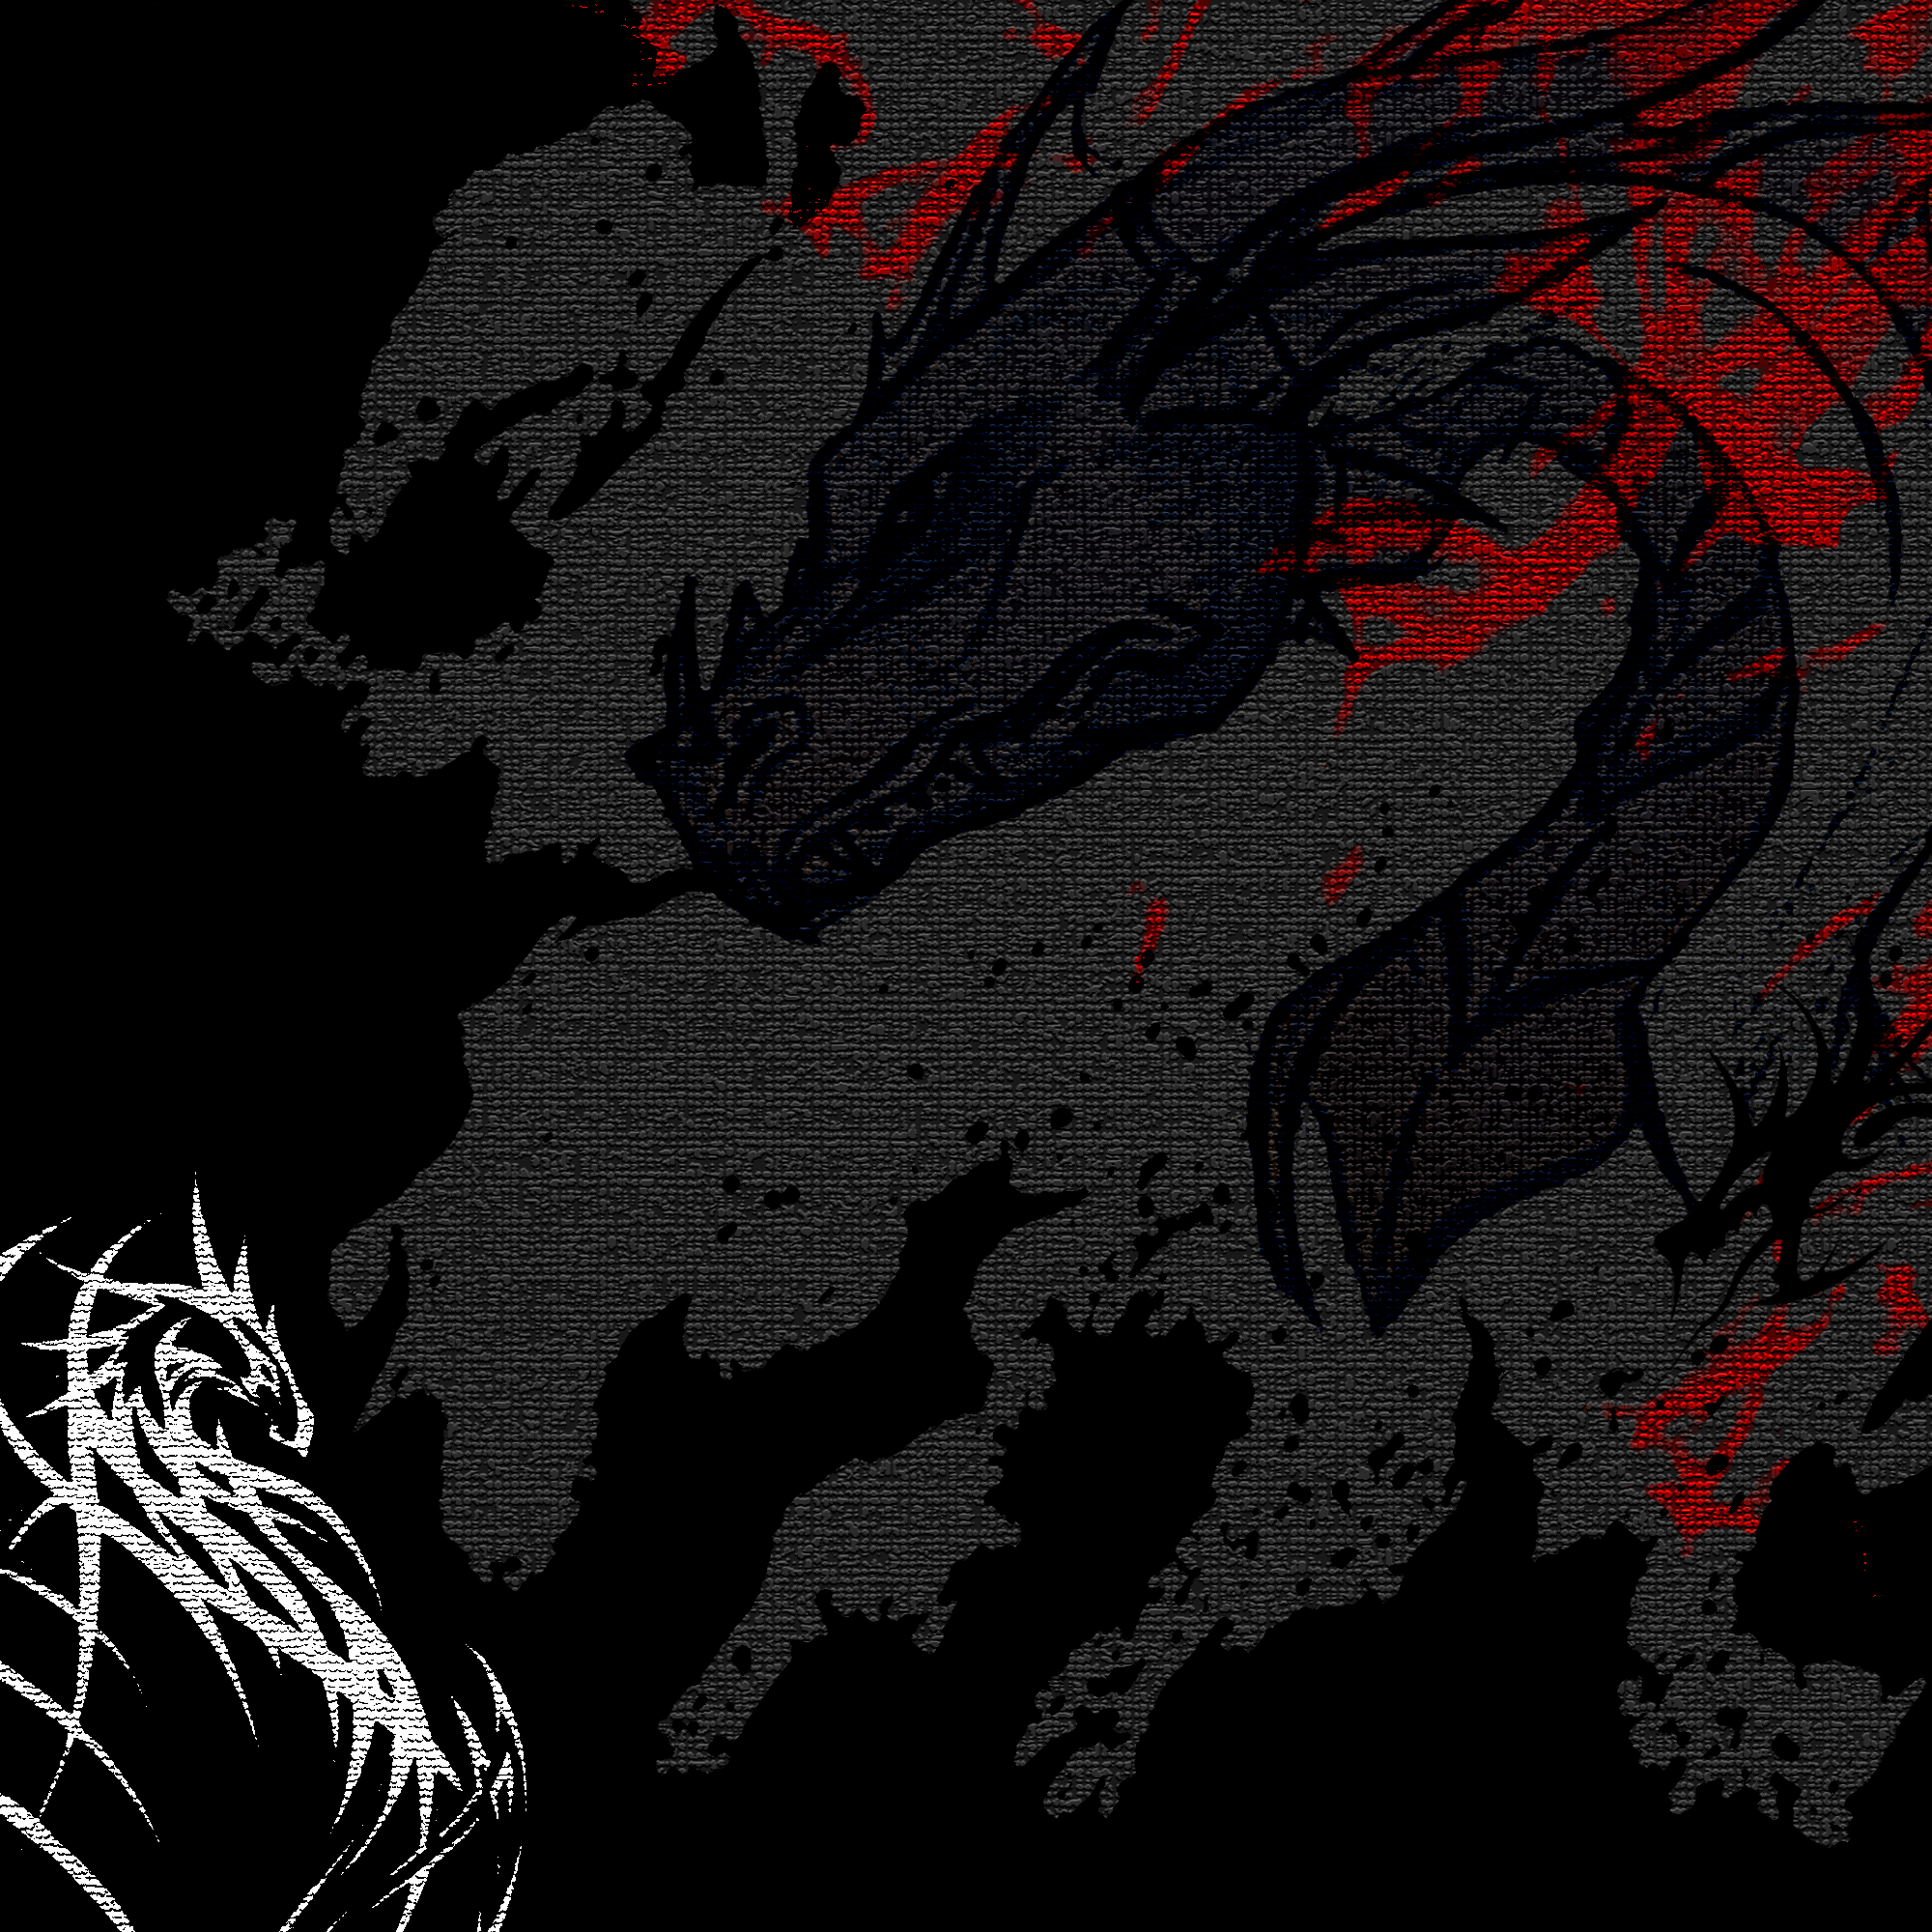 Massive And Epic Dragon Wallpaper By Xshadowdragonsx On Deviantart